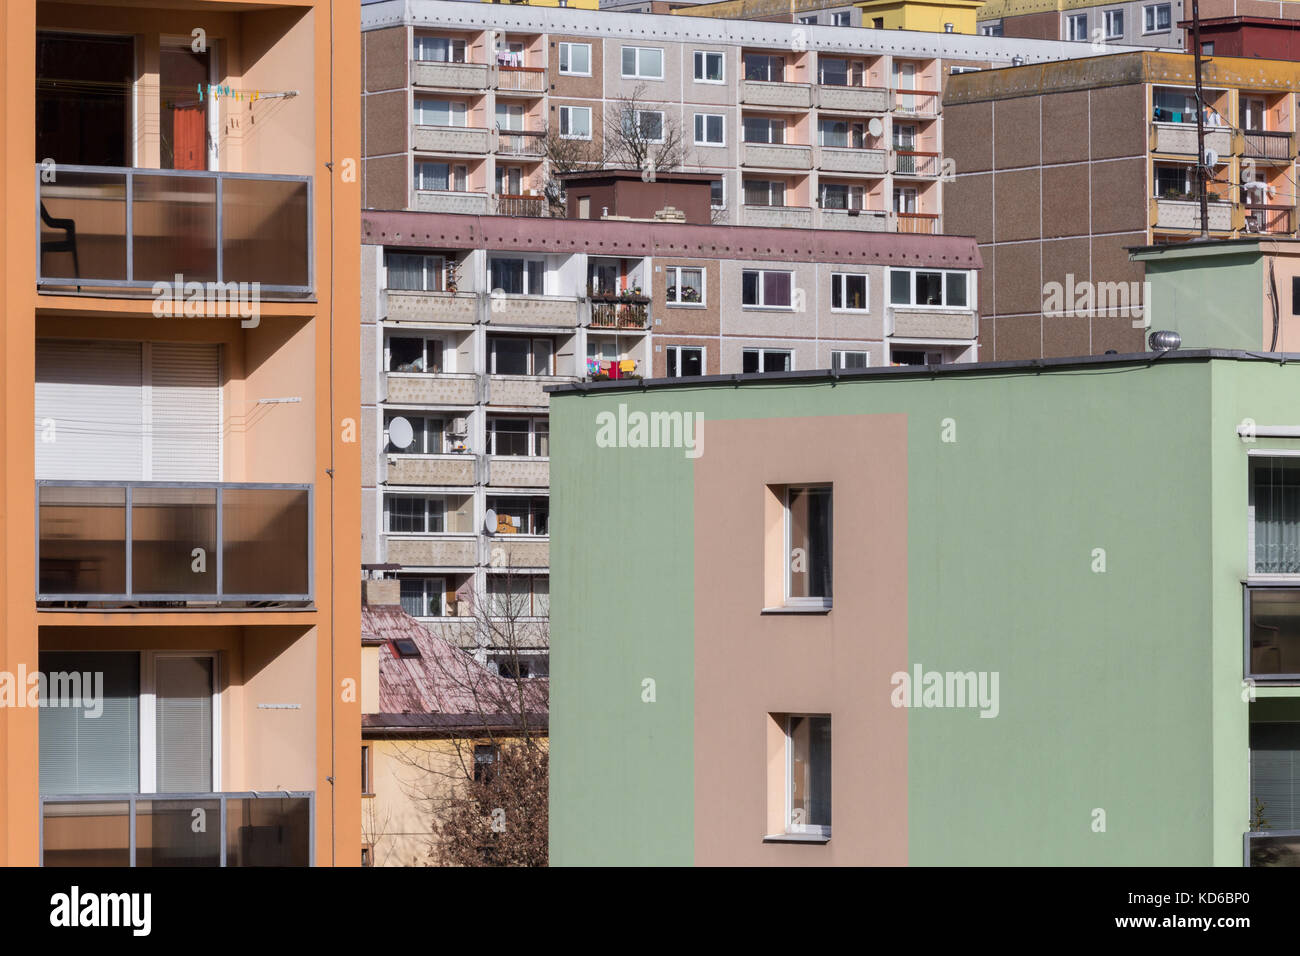 Socialist realism architecture in East European city Liberec - Stock Image